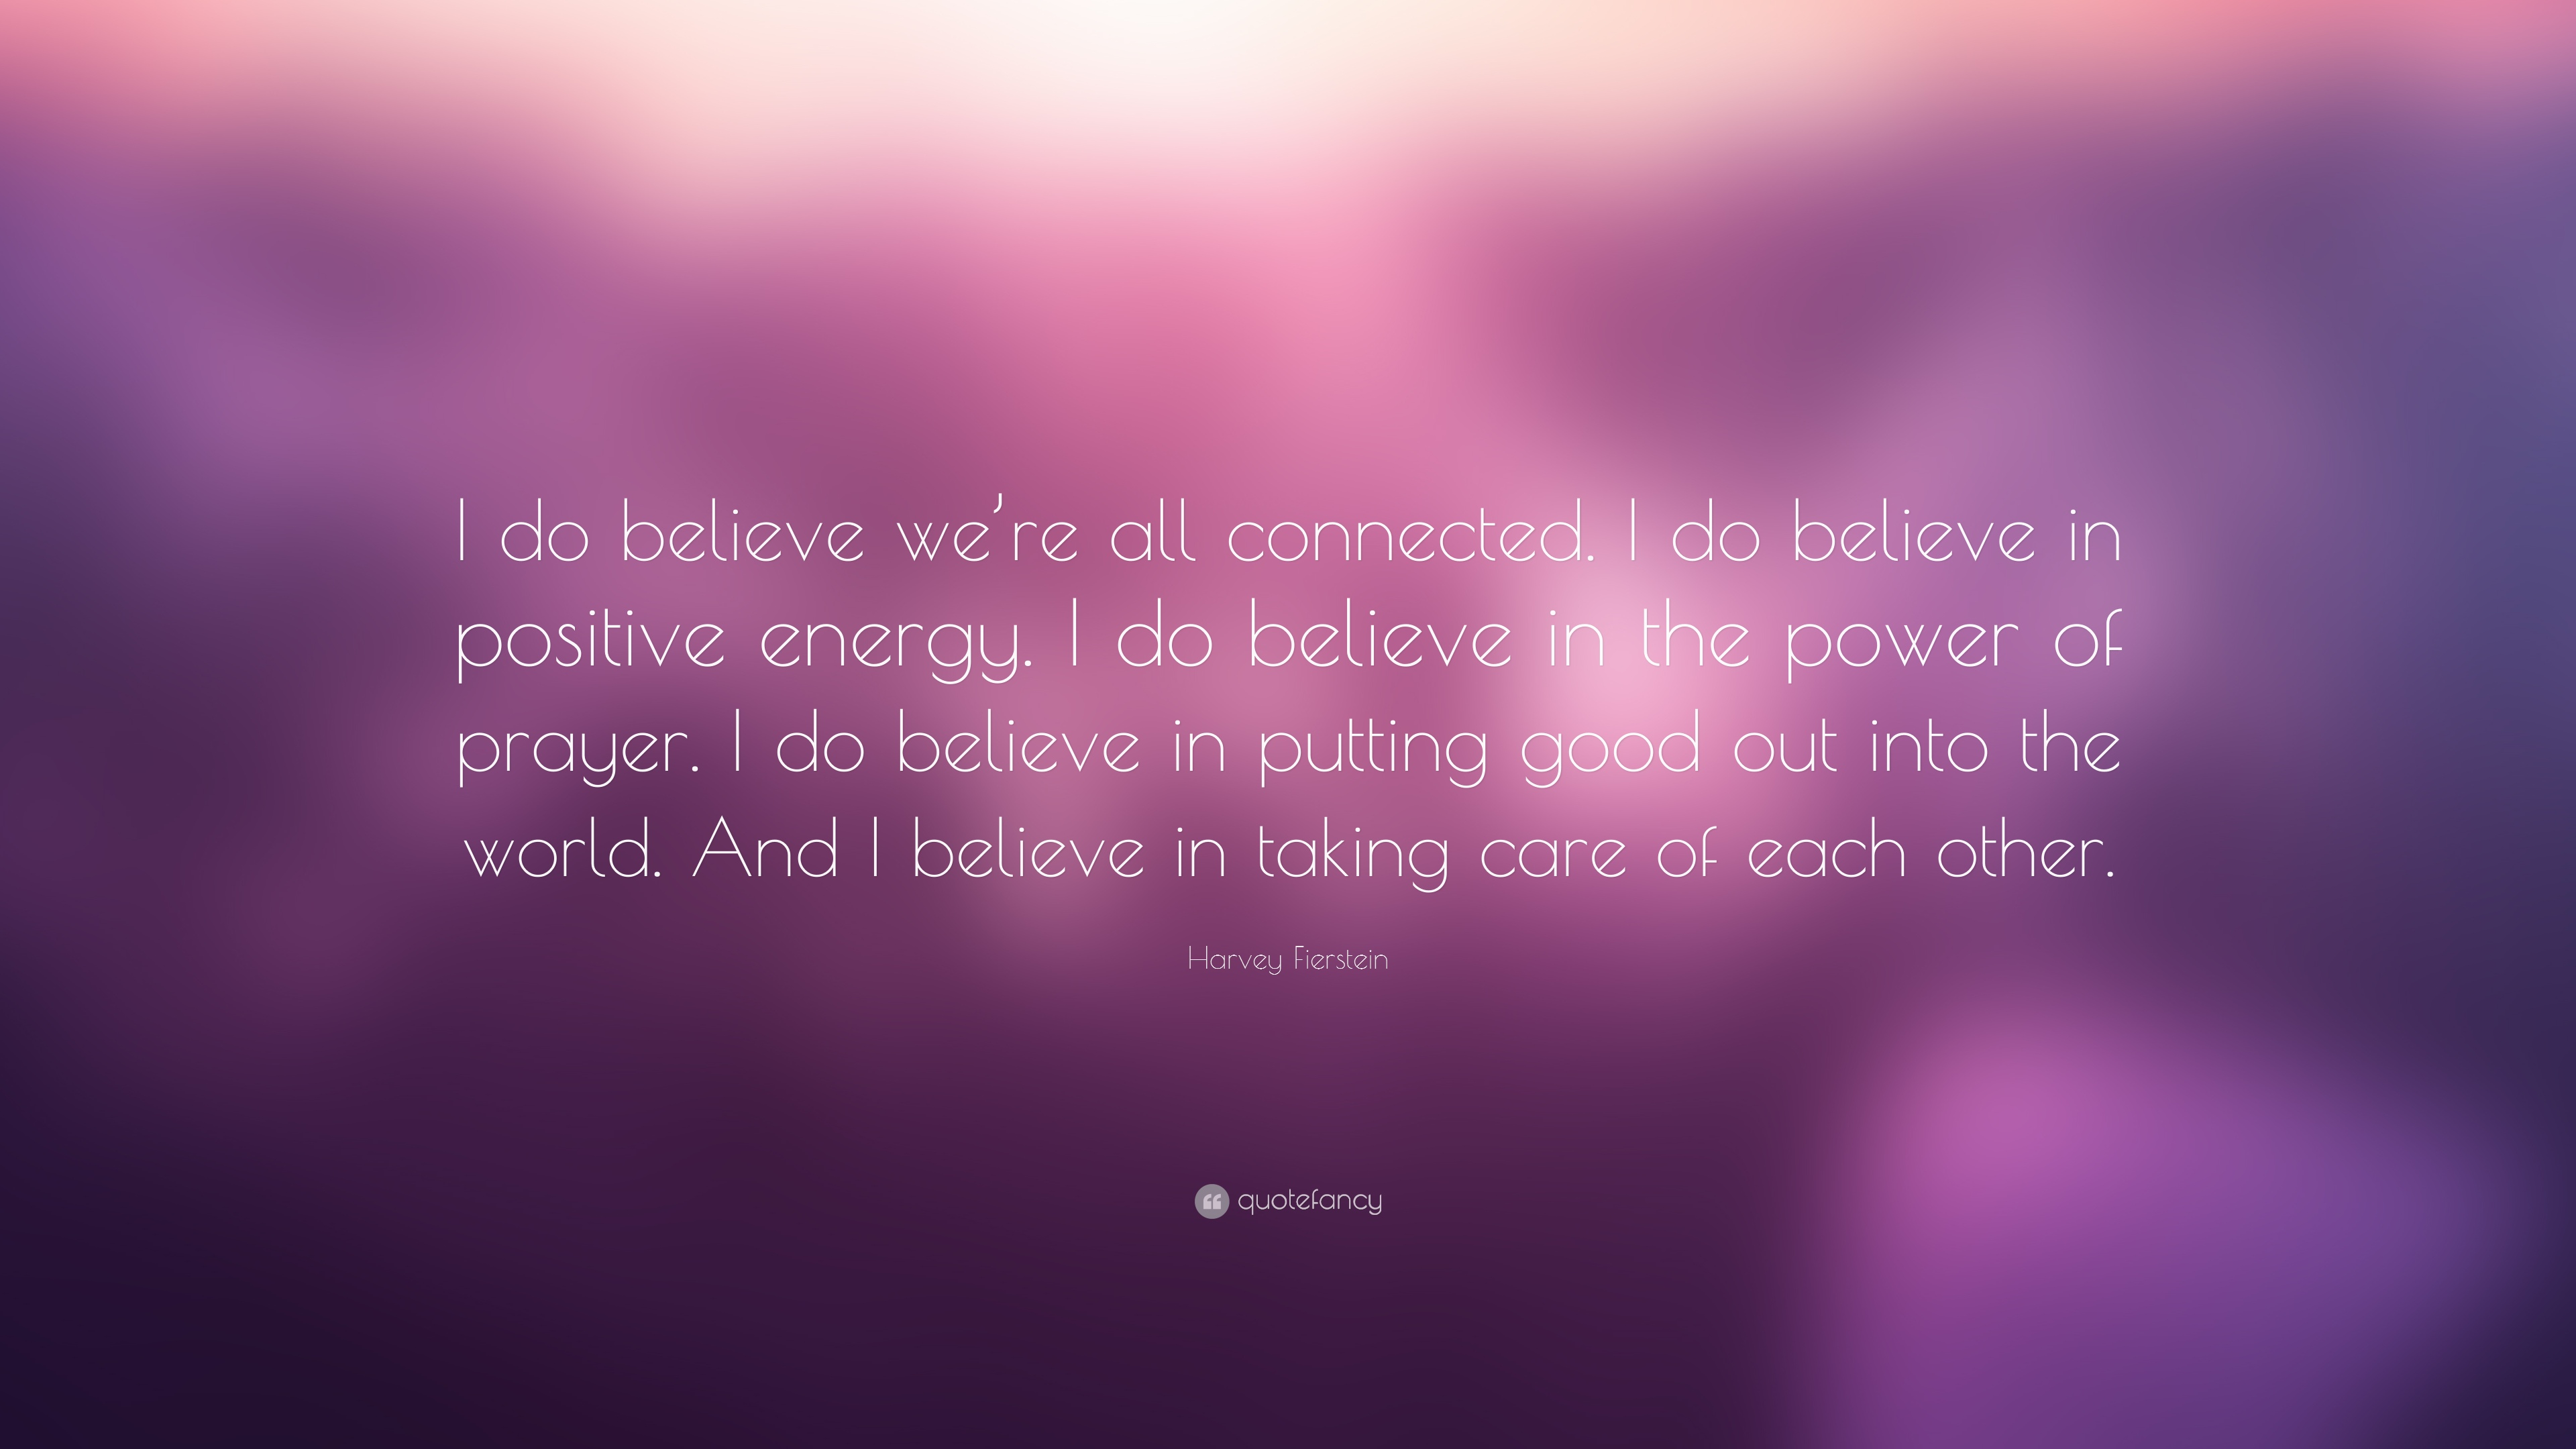 I Dont Care Quotes Wallpapers Harvey Fierstein Quote I Do Believe We Re All Connected